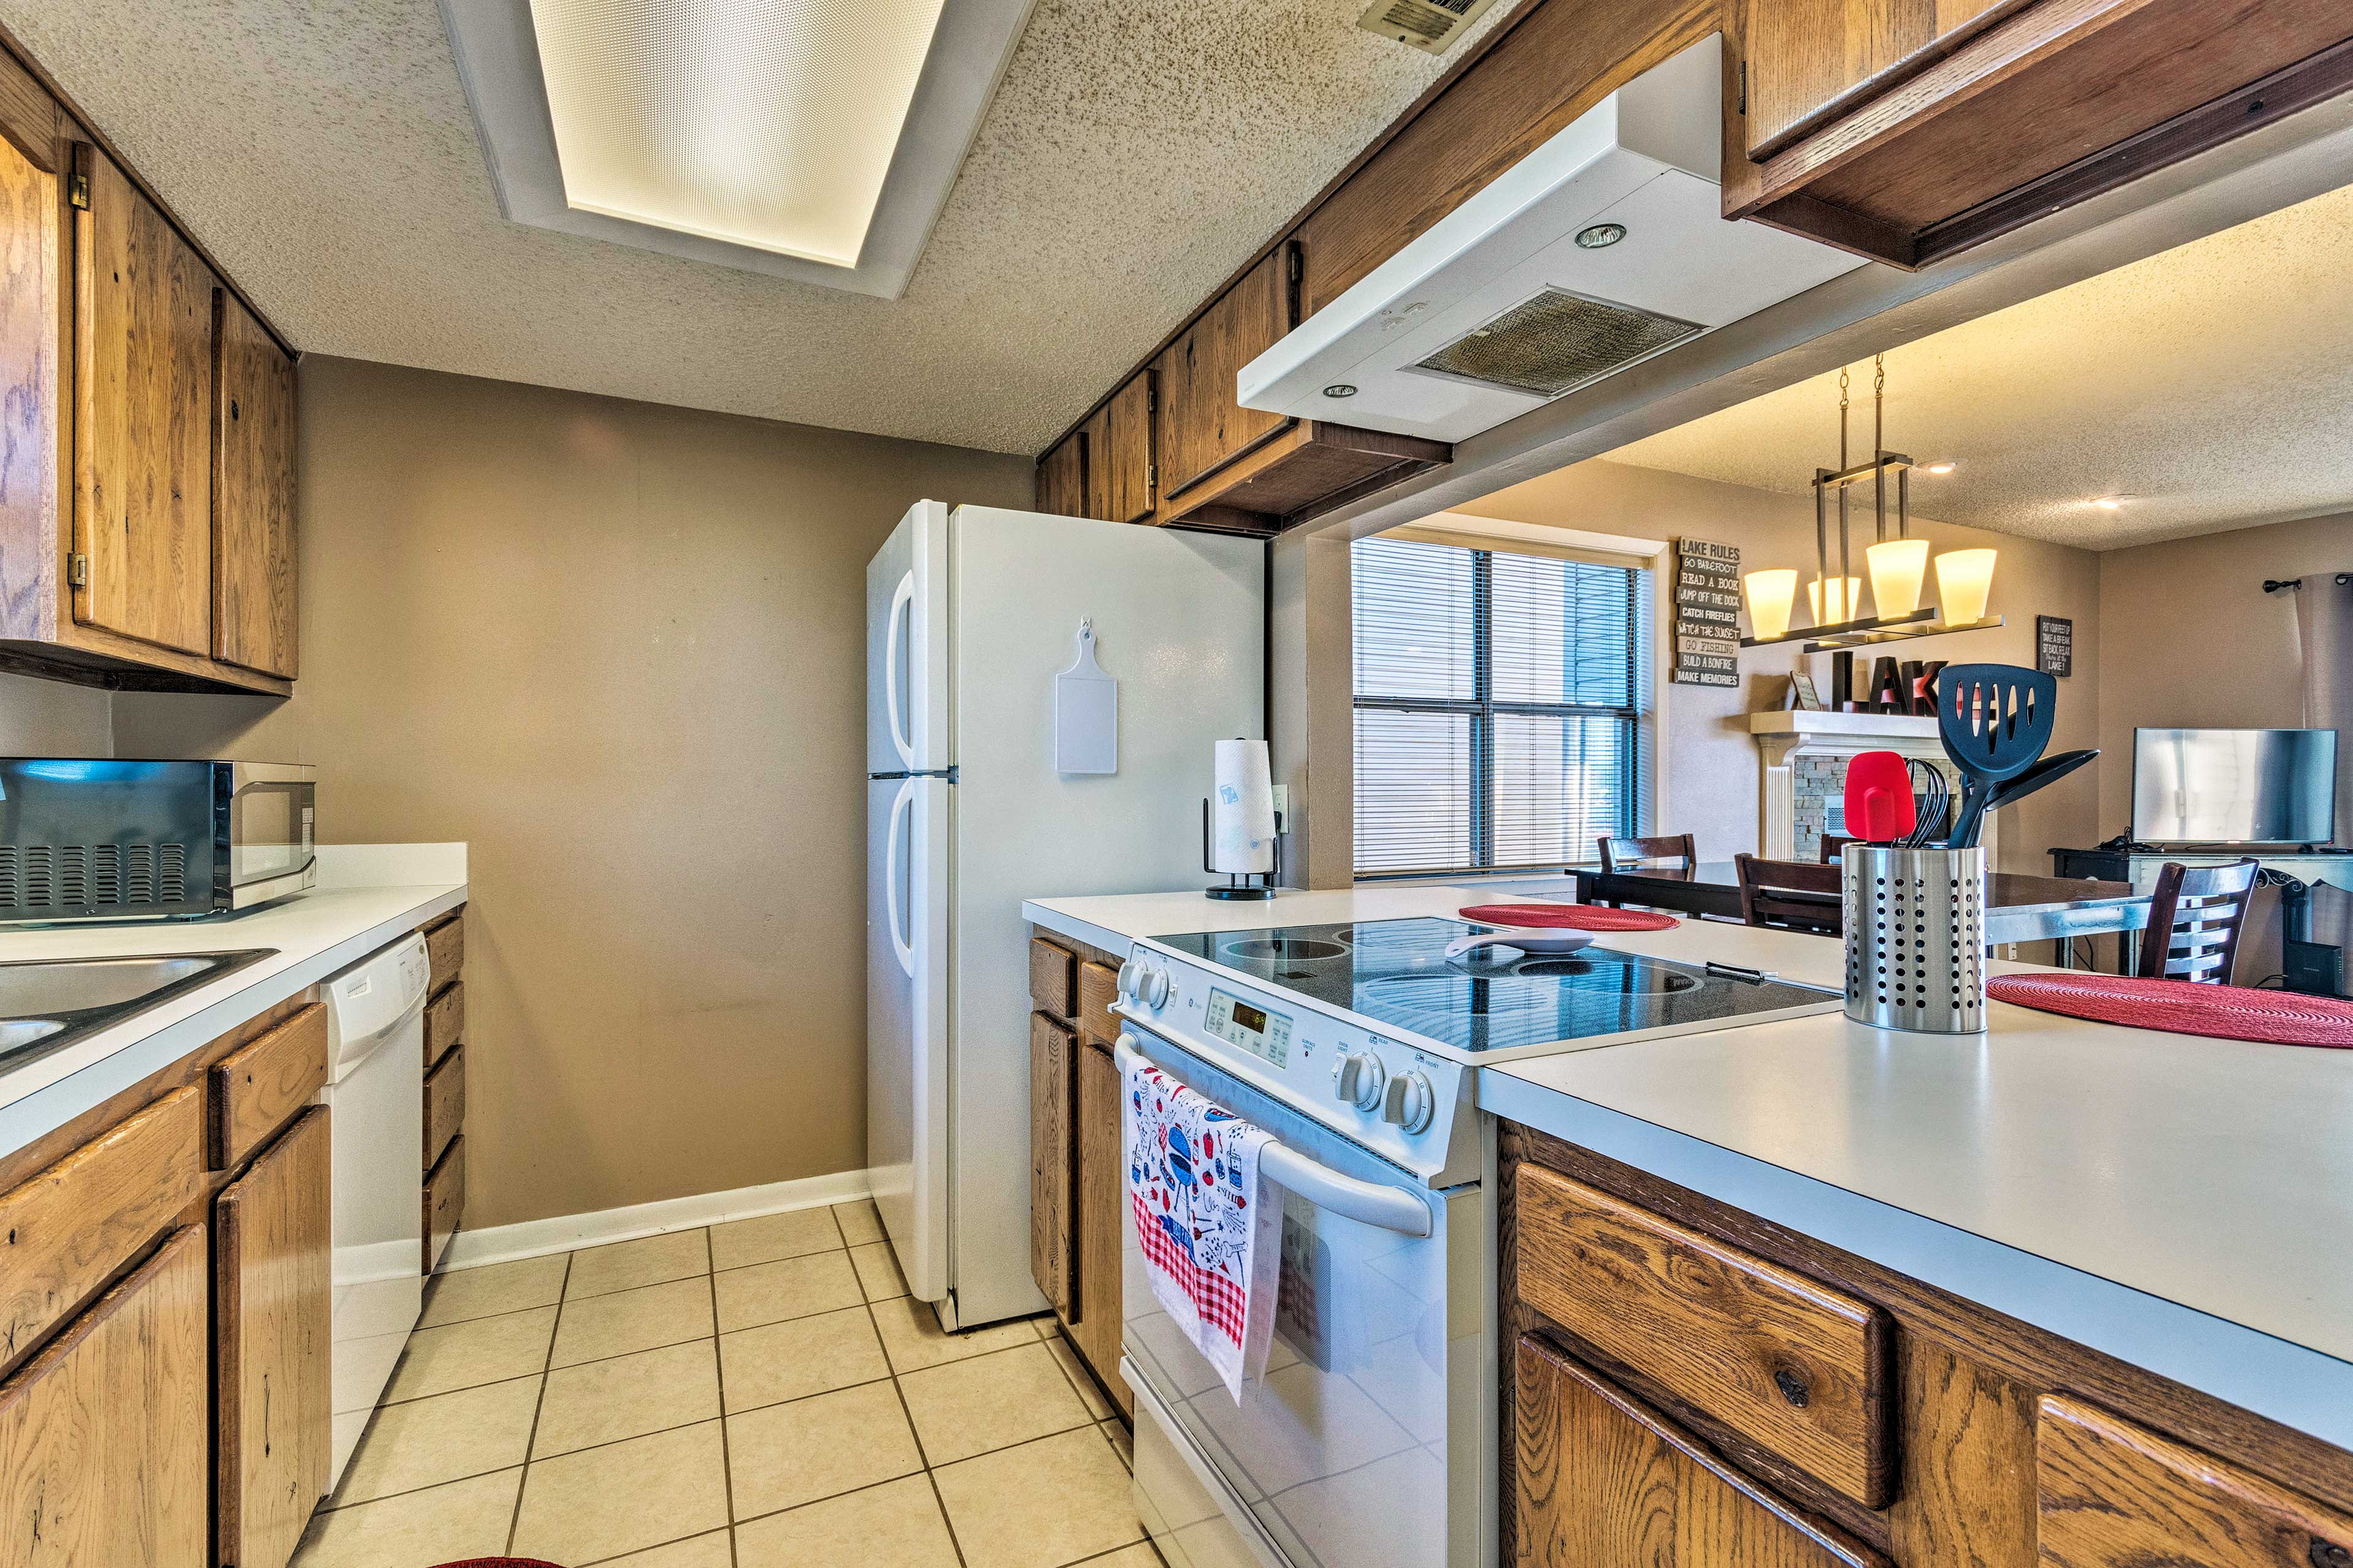 The fully equipped kitchen will make you feel like an Iron Chef.